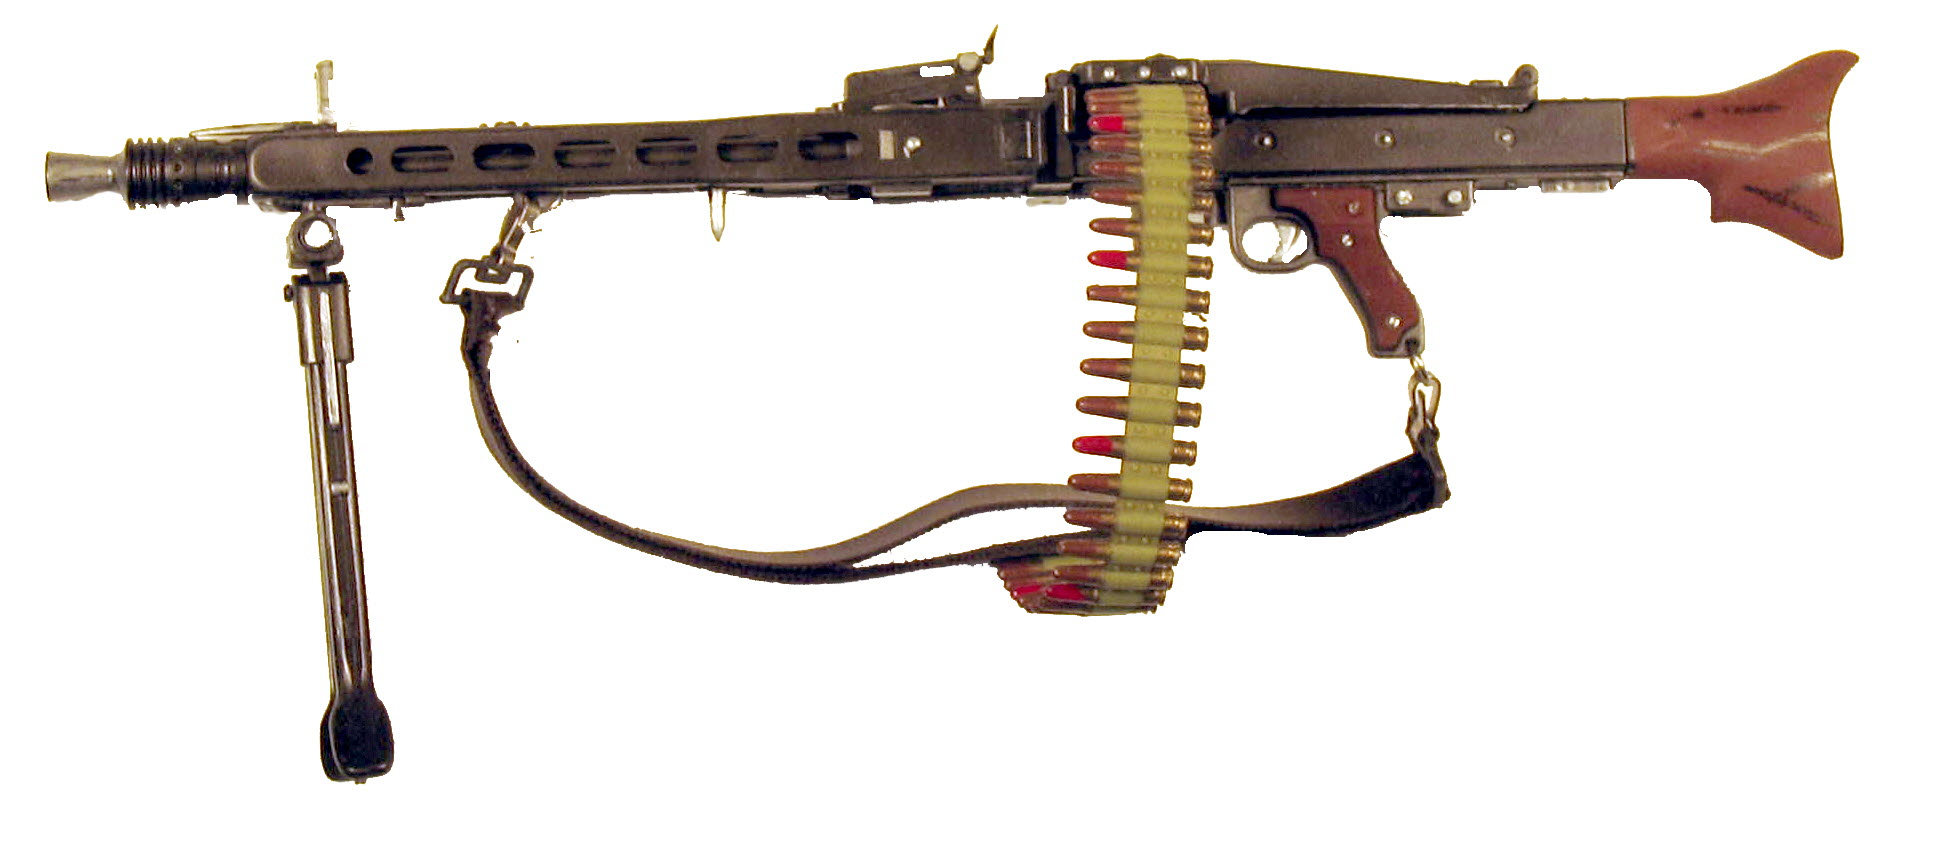 German MG-42 w/ammo belt - Click Image to Close